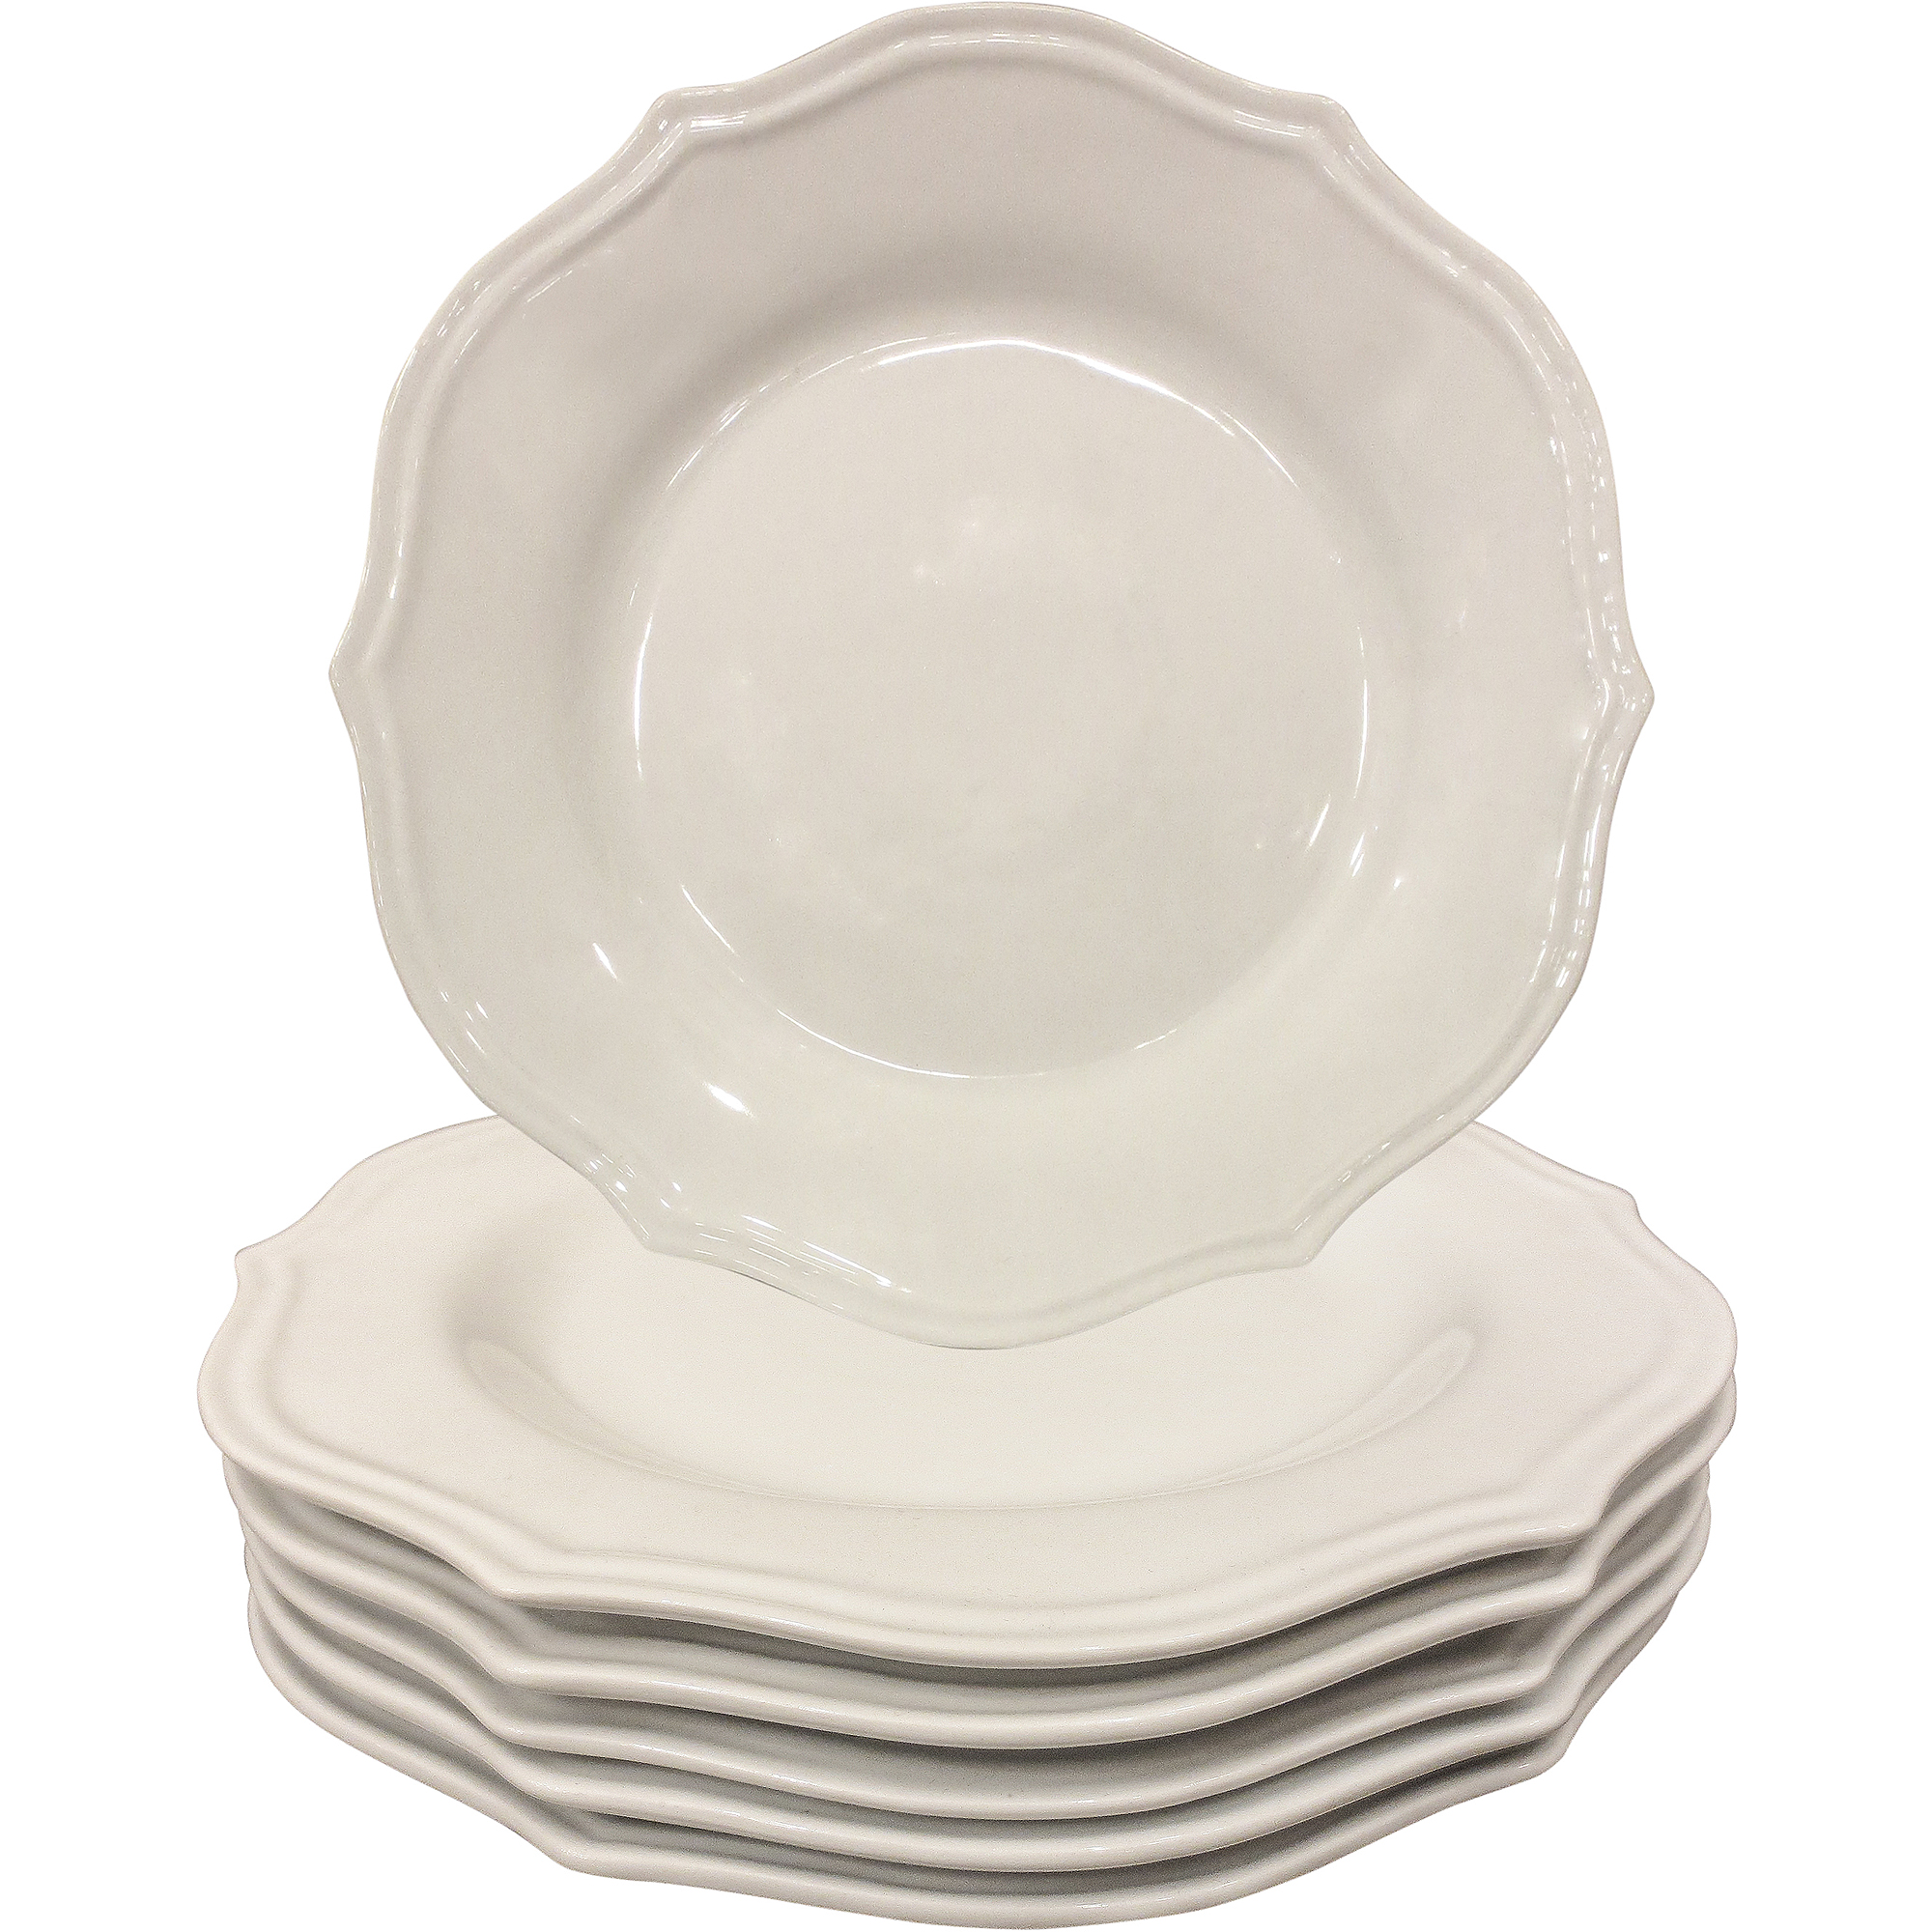 Better Homes And Gardens Scalloped Dinner Plates, White Set Of 6